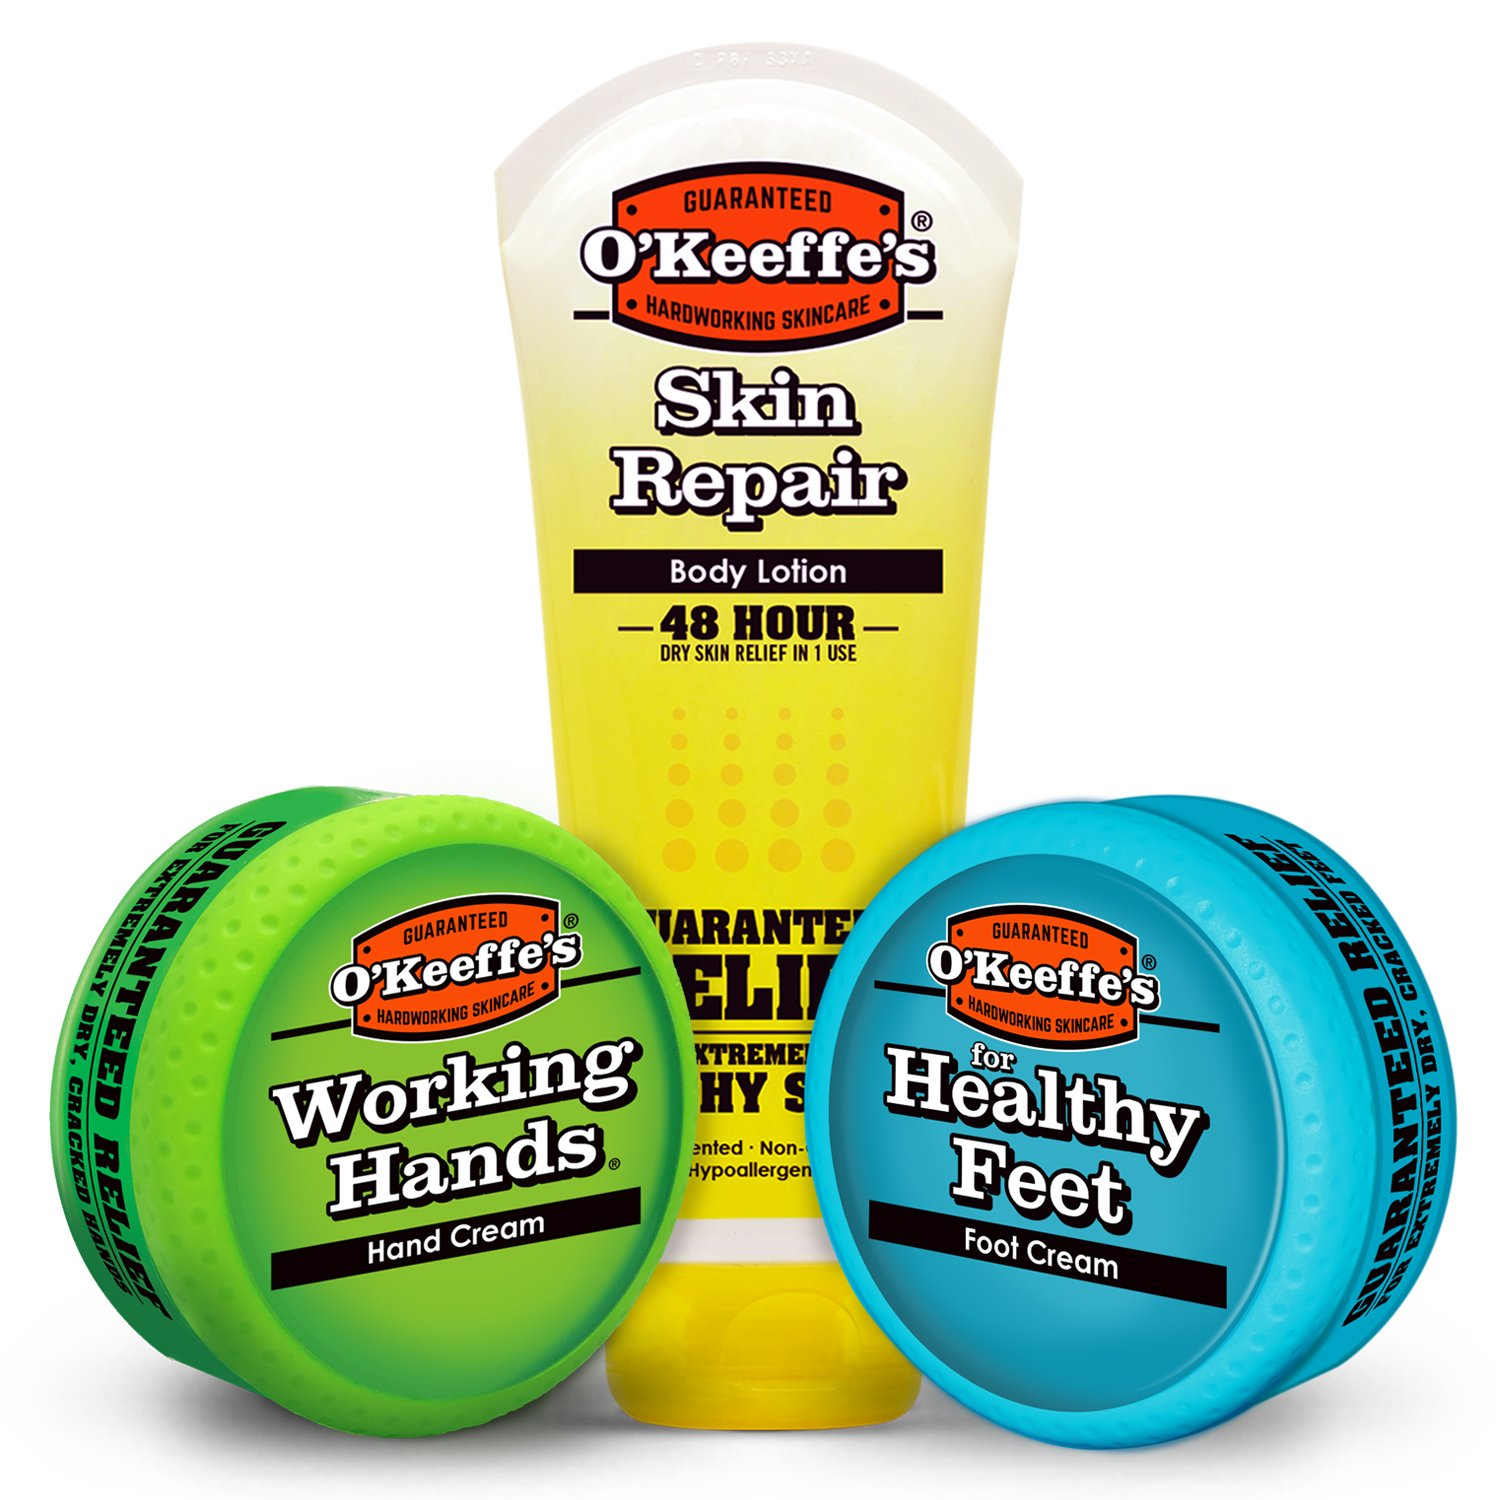 O'Keeffe's Working Hands, Healthy Feet, Skin Repair Variety Pack by O'Keeffe's